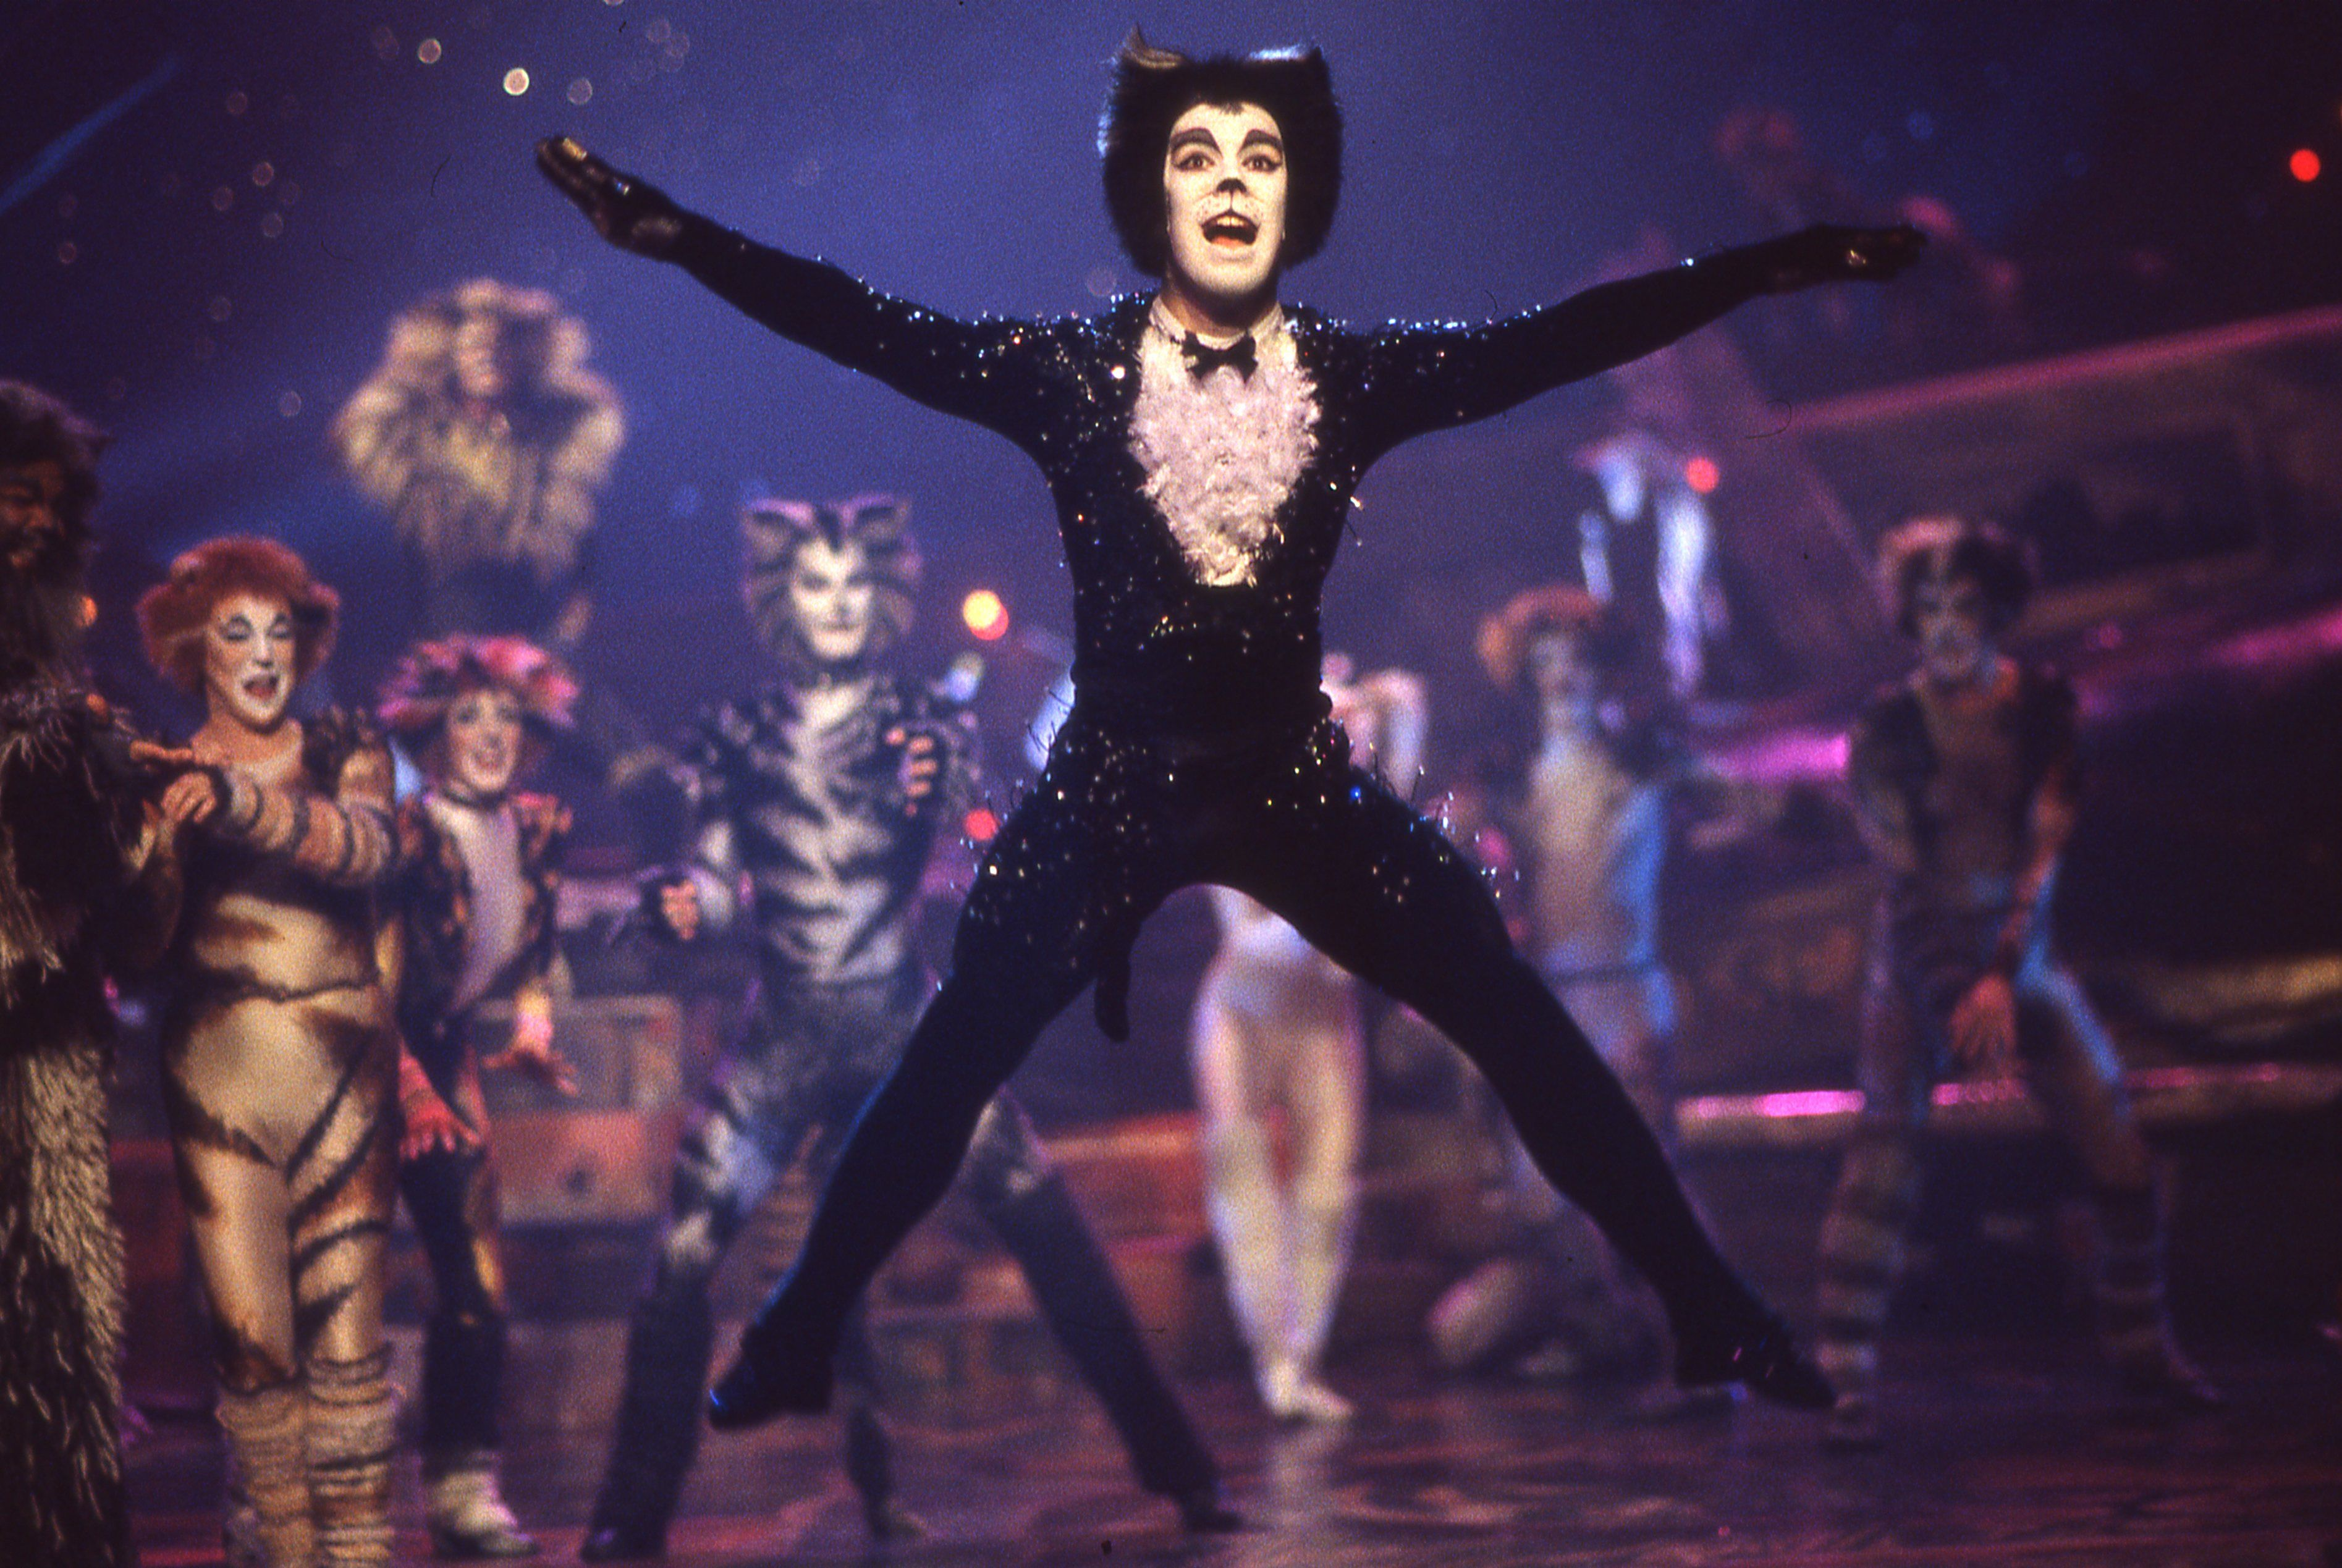 Cats on Screen Cats the Musical Jellicle cats, Cats